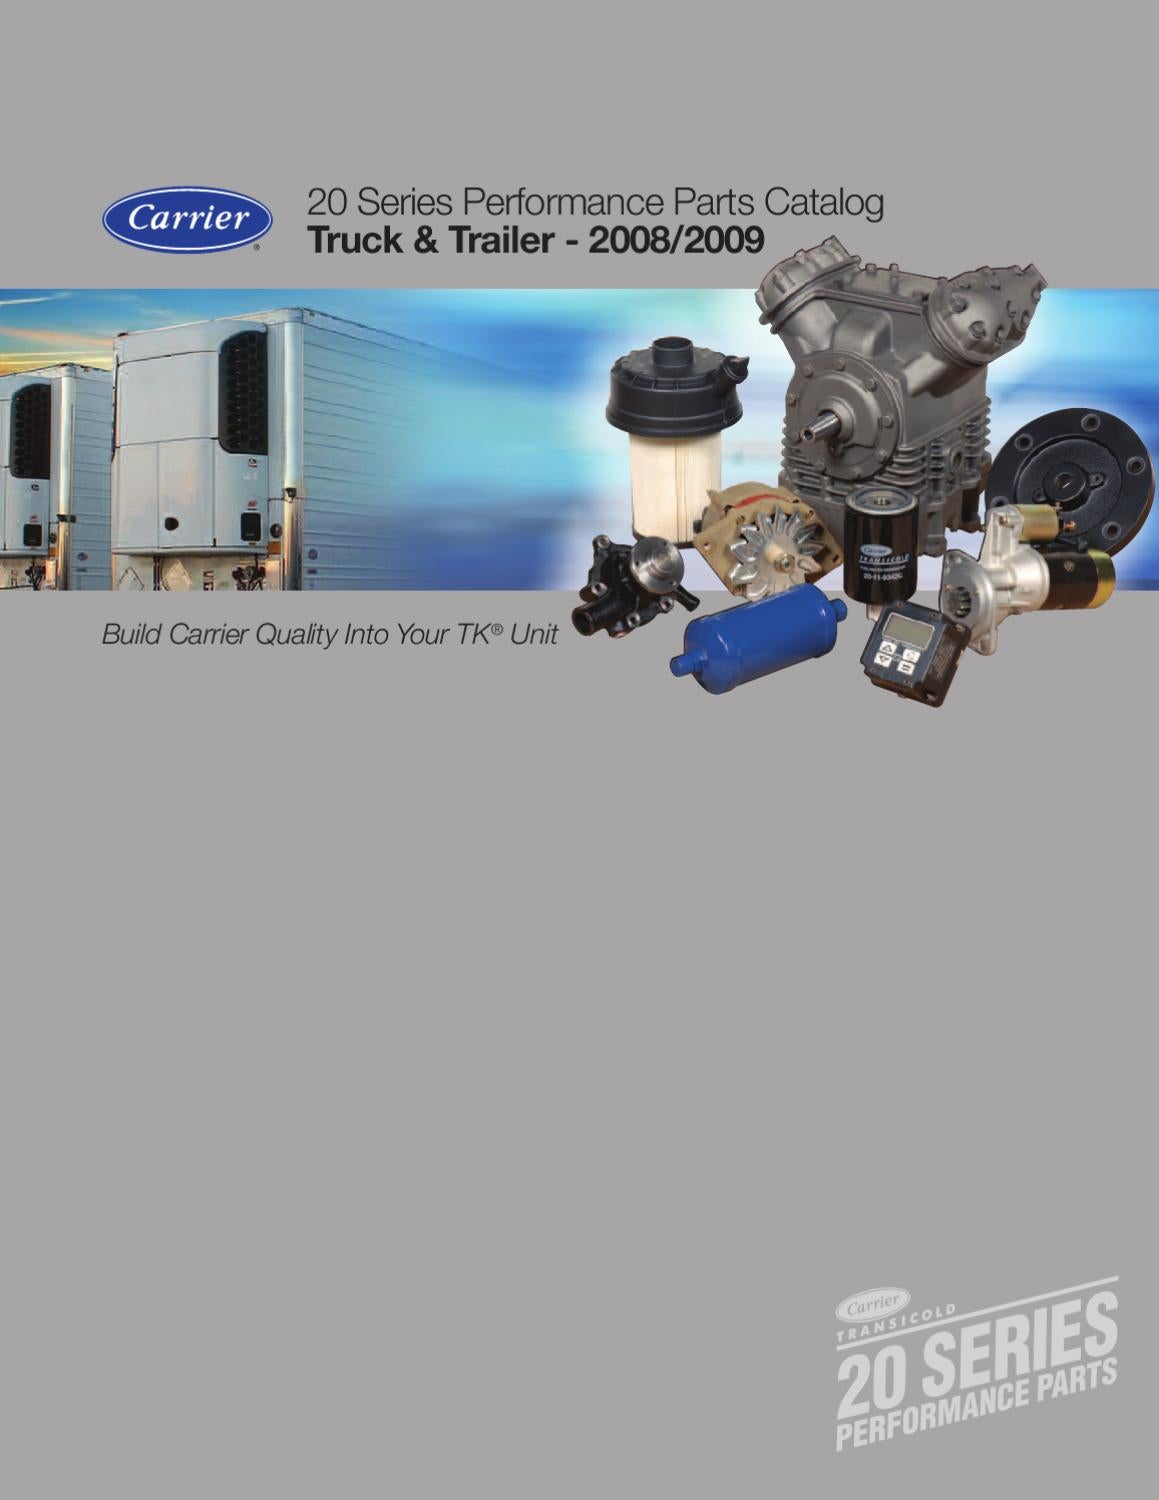 Carrier 20 Series Part Catalog By New Asia Pacific Issuu Generator Accessory Buy Safety Switchair Circuit Breakergenerator